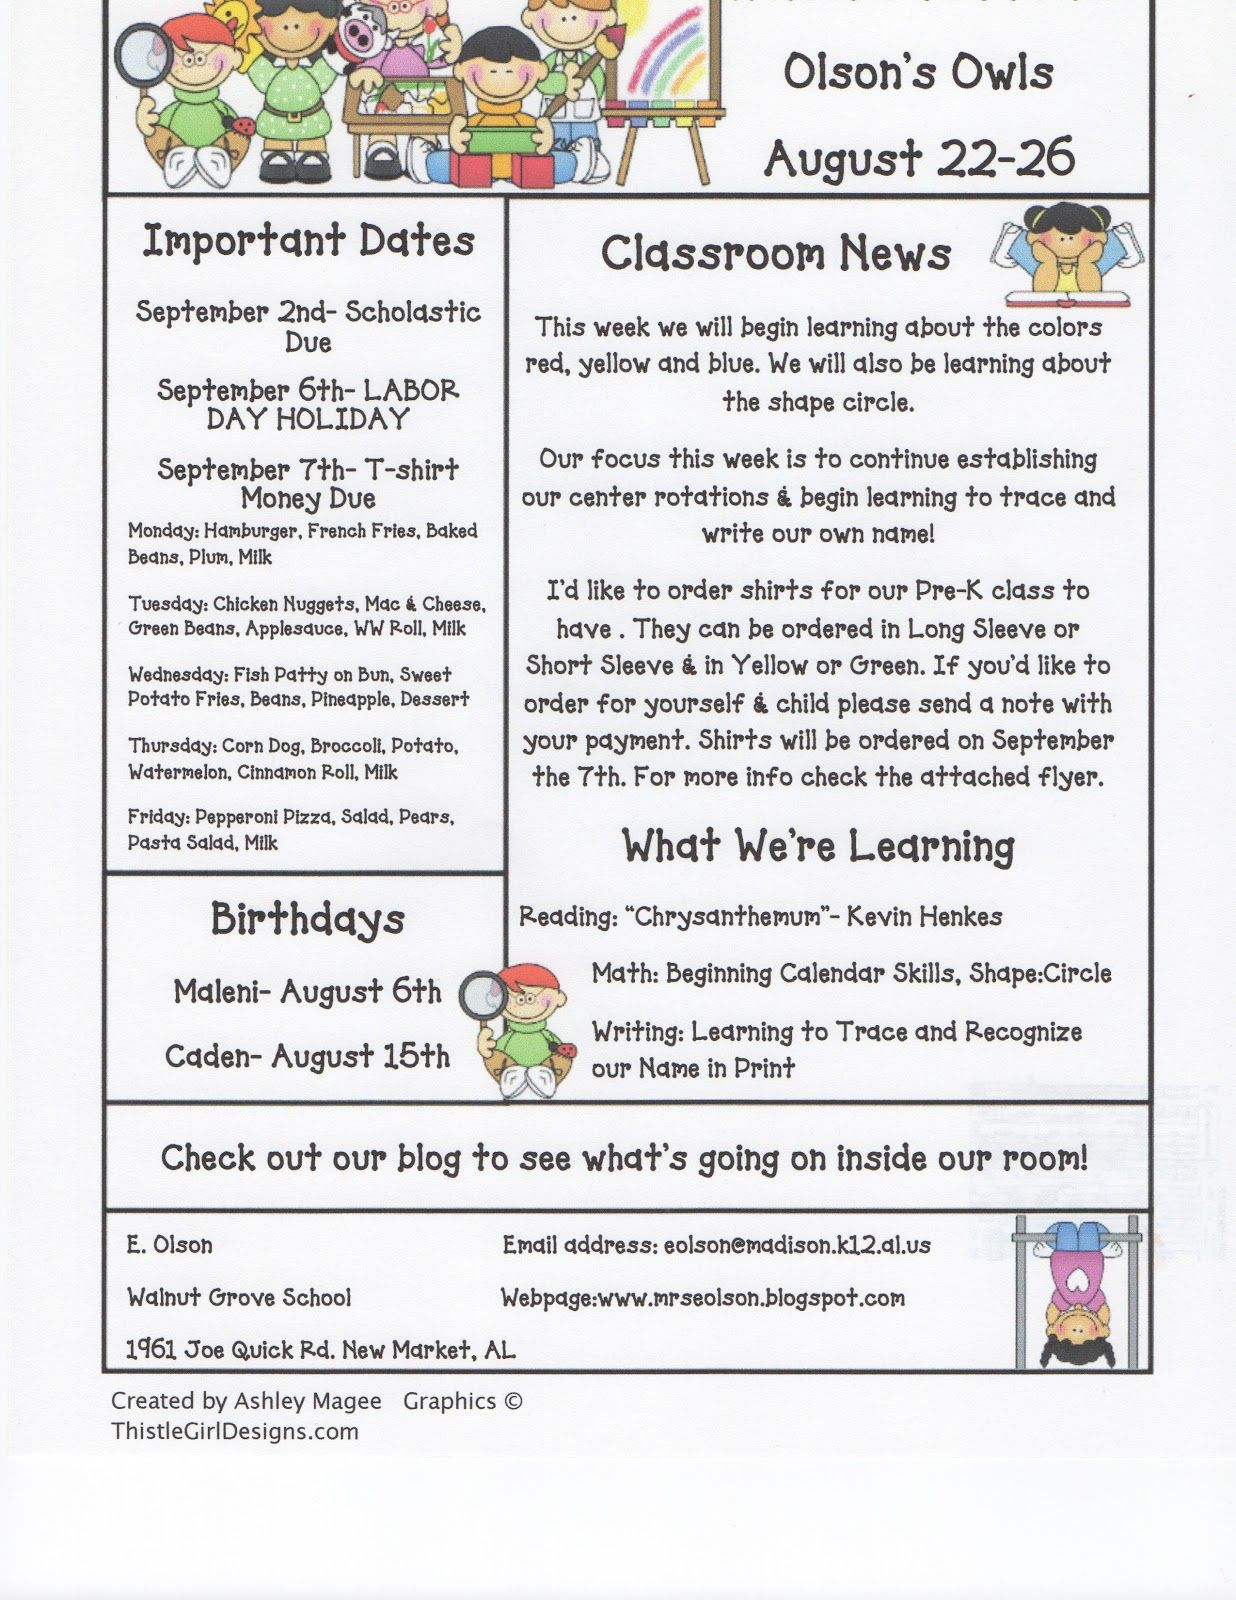 December School Newsletter Ideas  Click On The Image To Make It